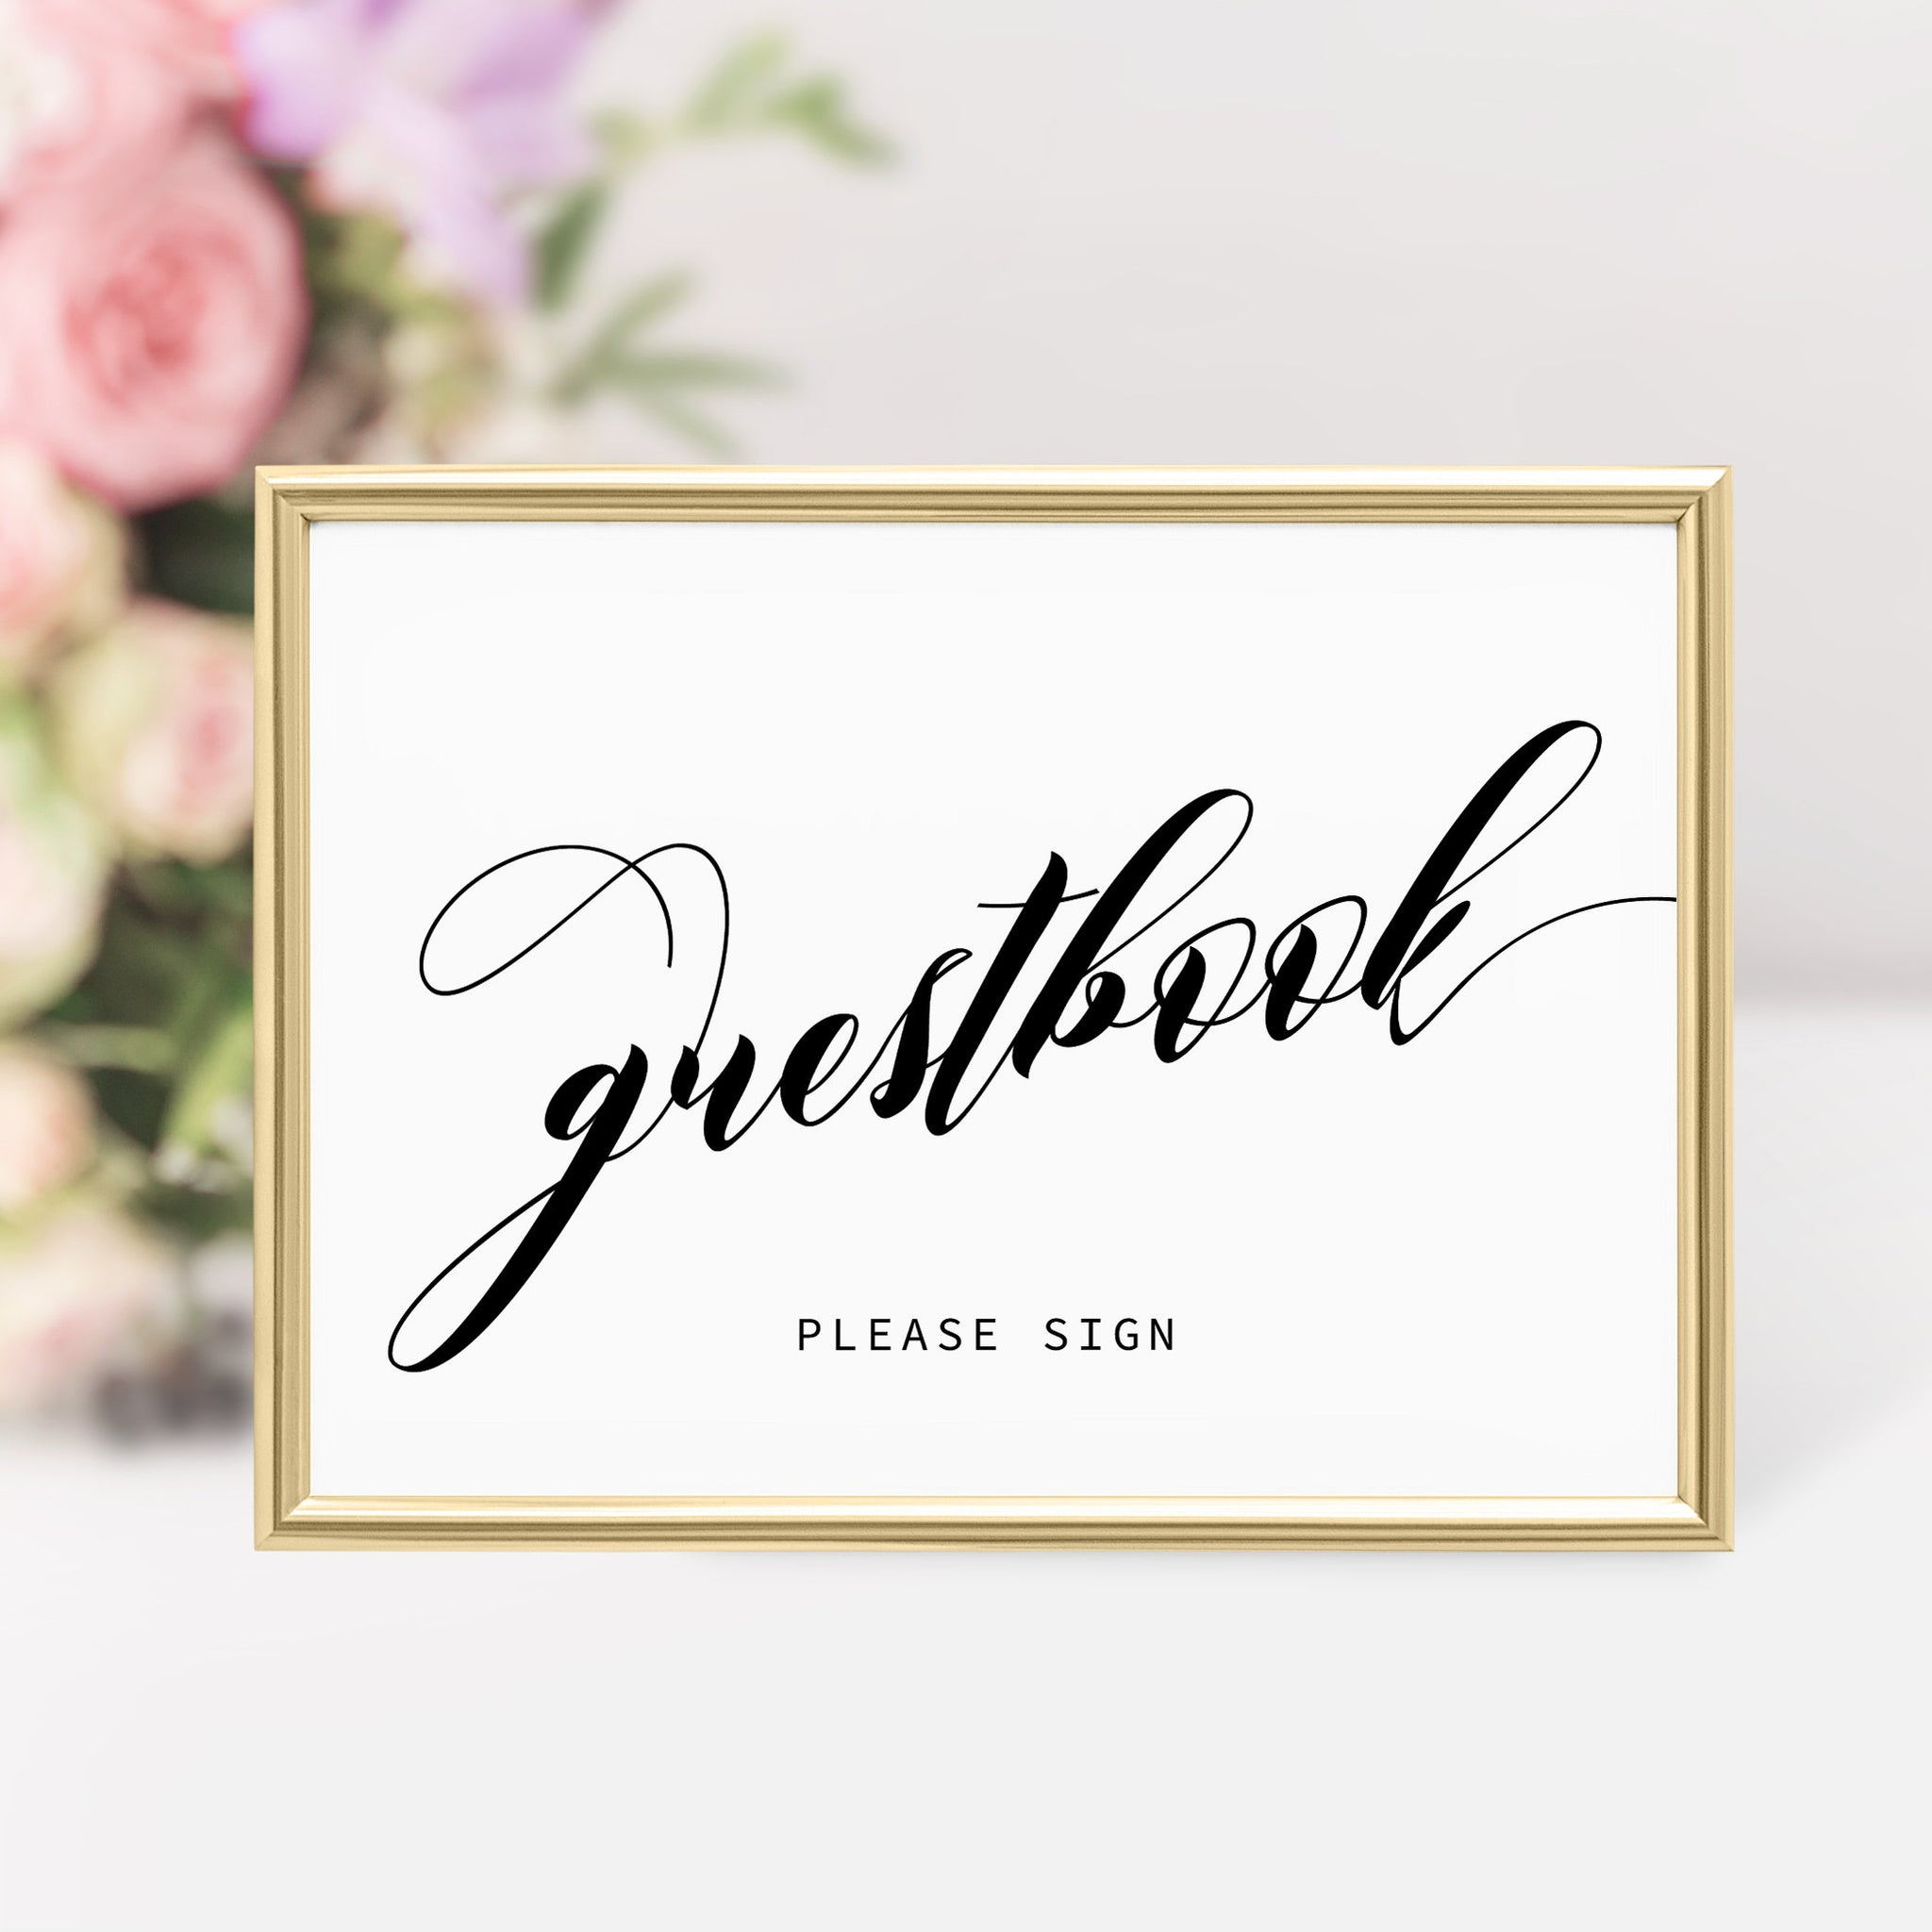 Guestbook Sign Wedding, Minimalist Wedding Guestbook Sign, Bridal Shower Decor, Guestbook Sign Printable, INSTANT DOWNLOAD - SFB100 - @PlumPolkaDot